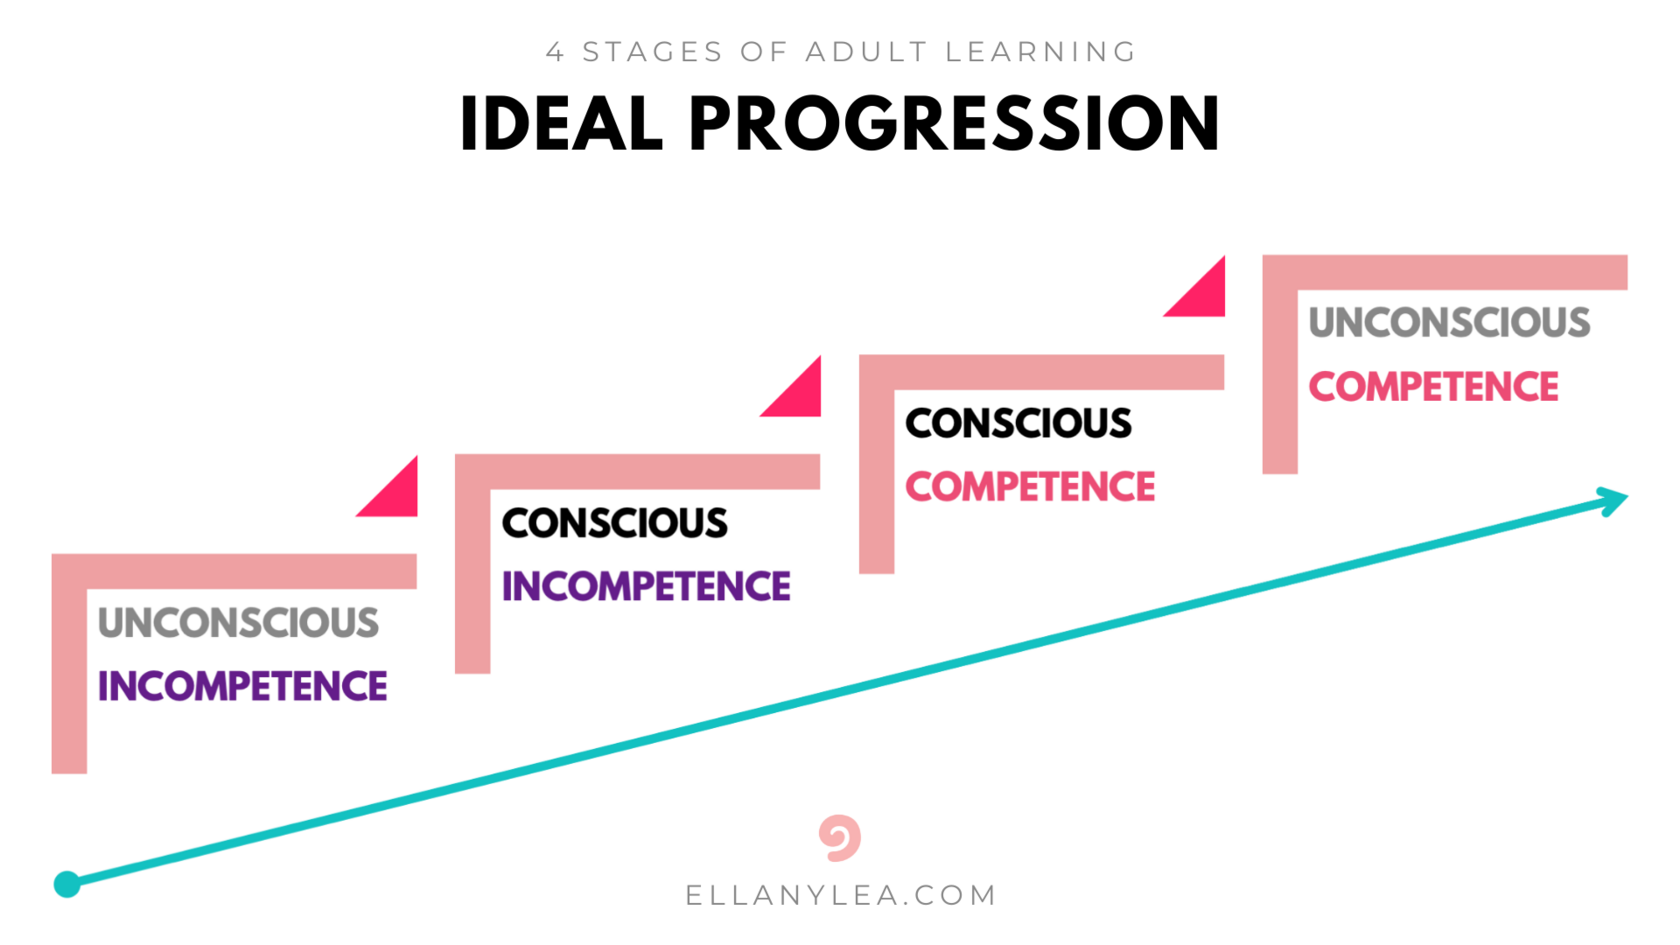 EL - 4 Stages of Adult Learning - Imagined Progression